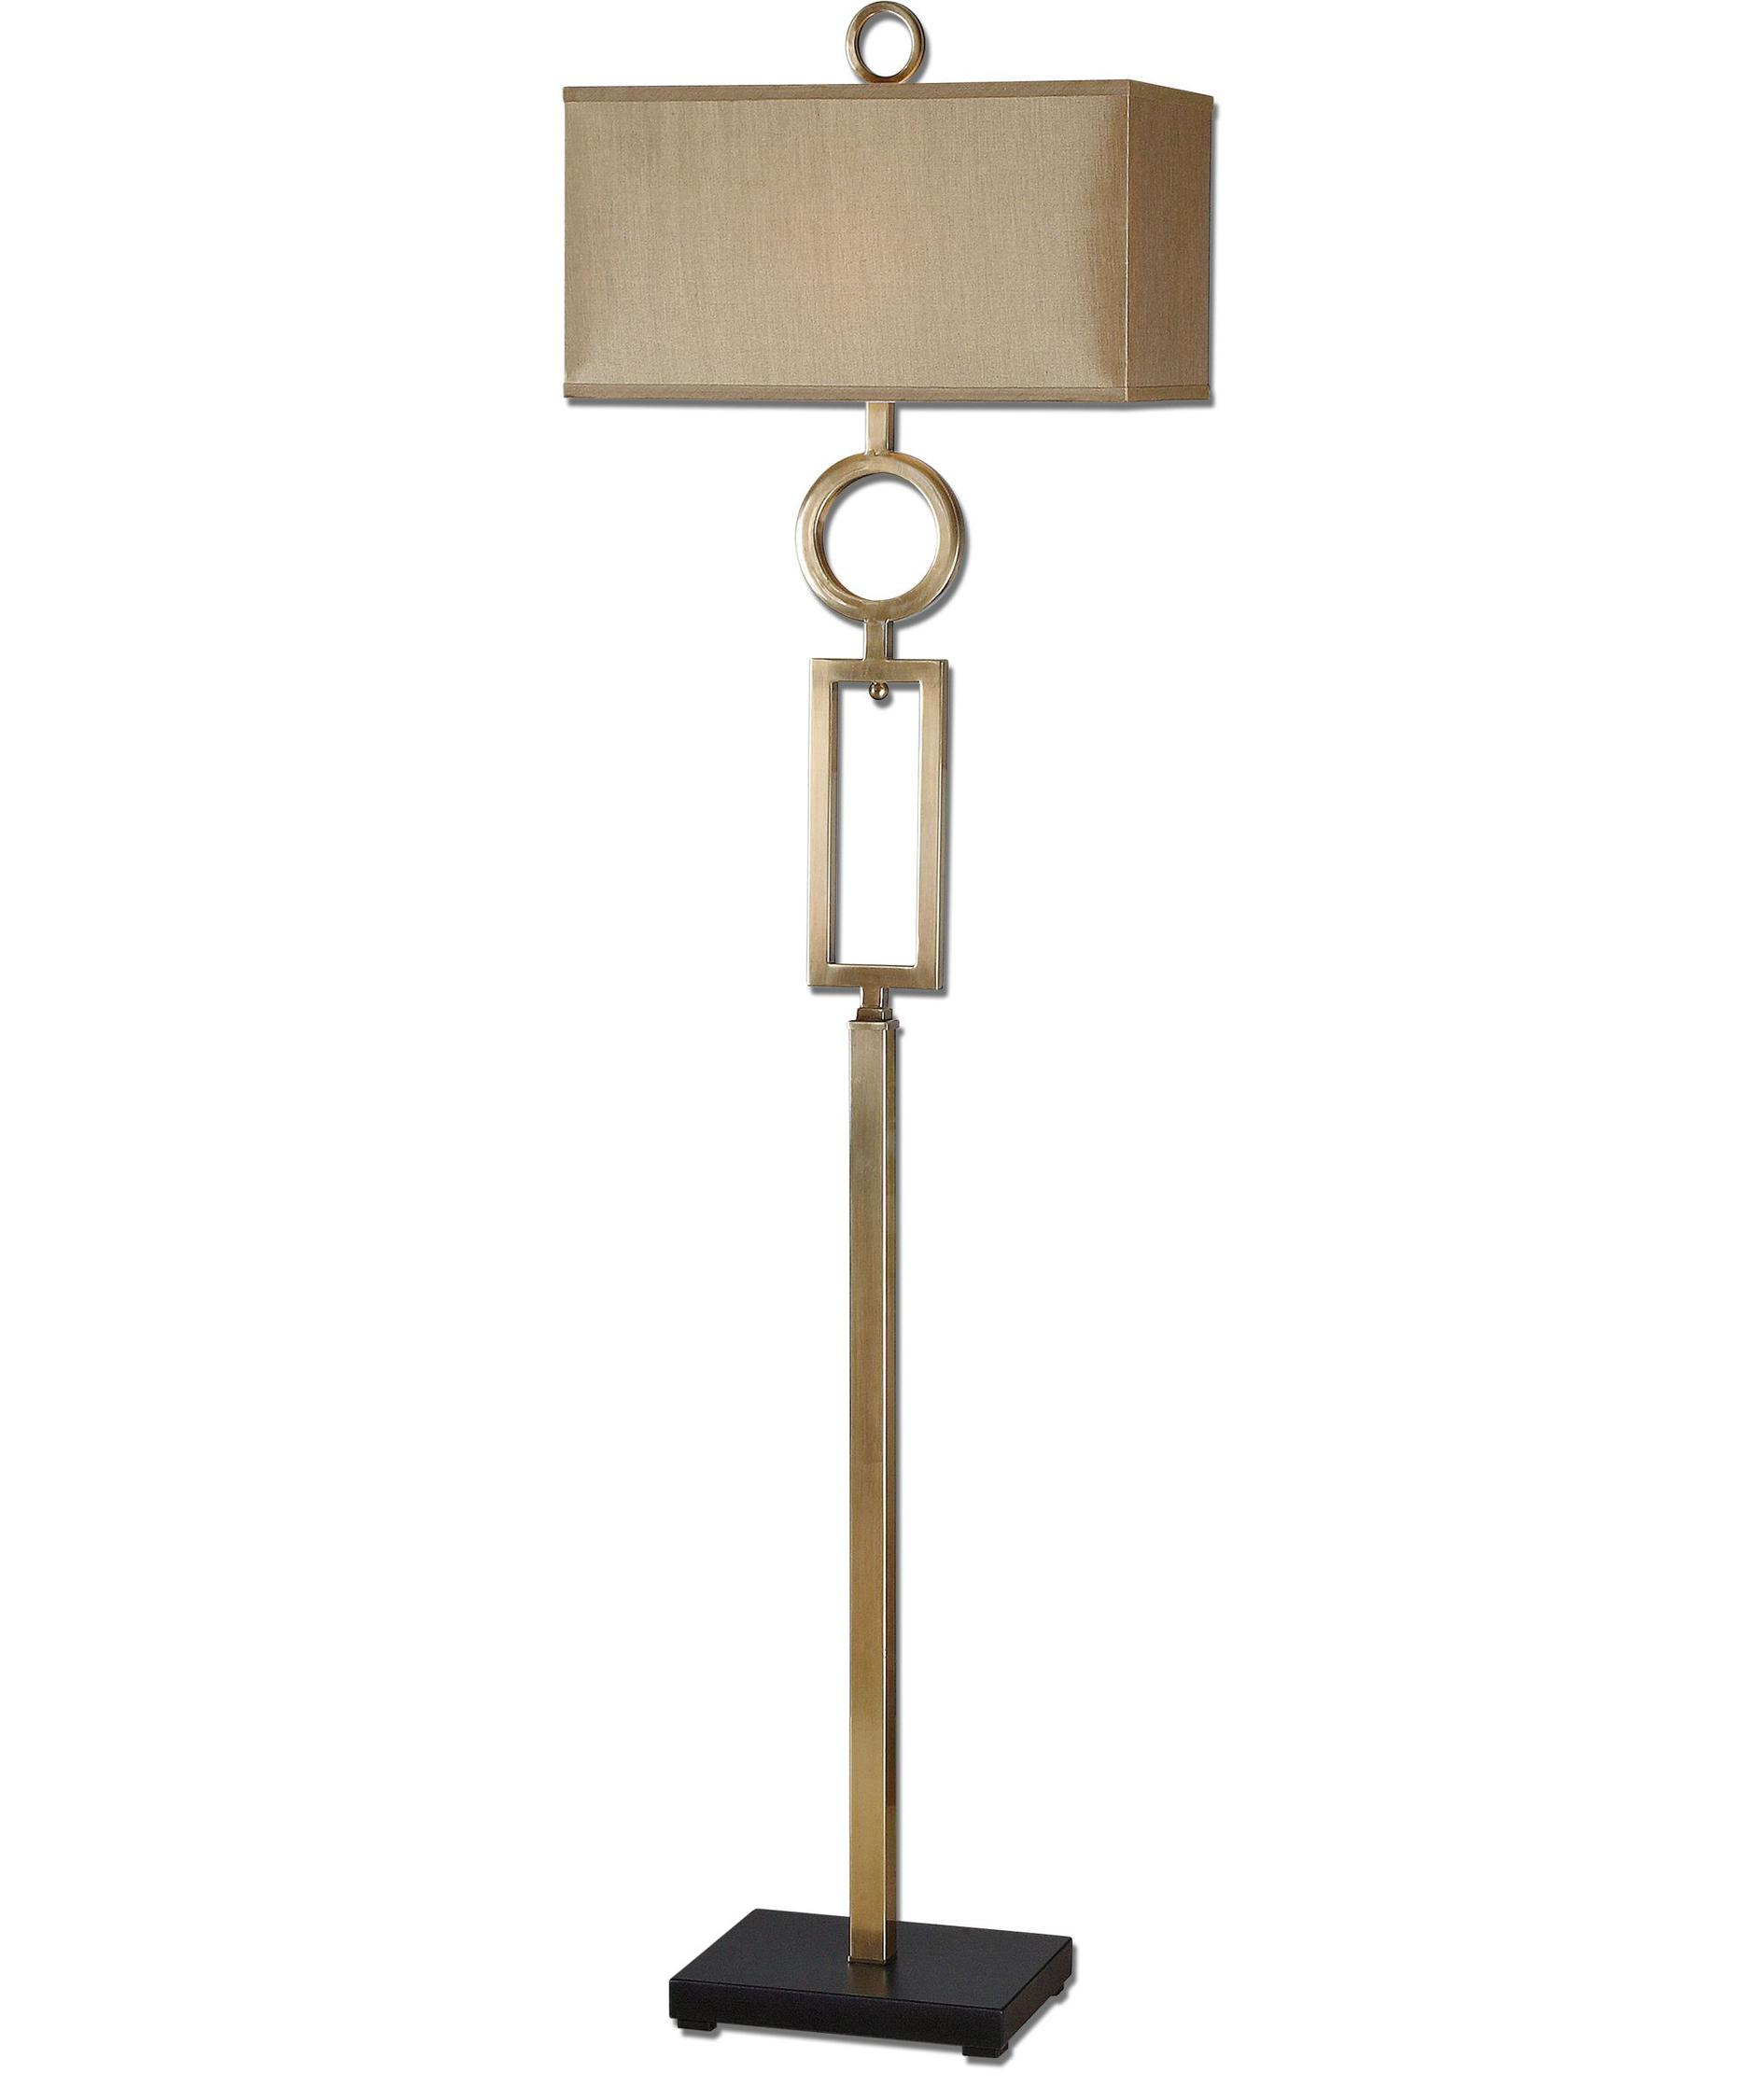 shown in plated coffee bronze finish and rectangle hardback shade